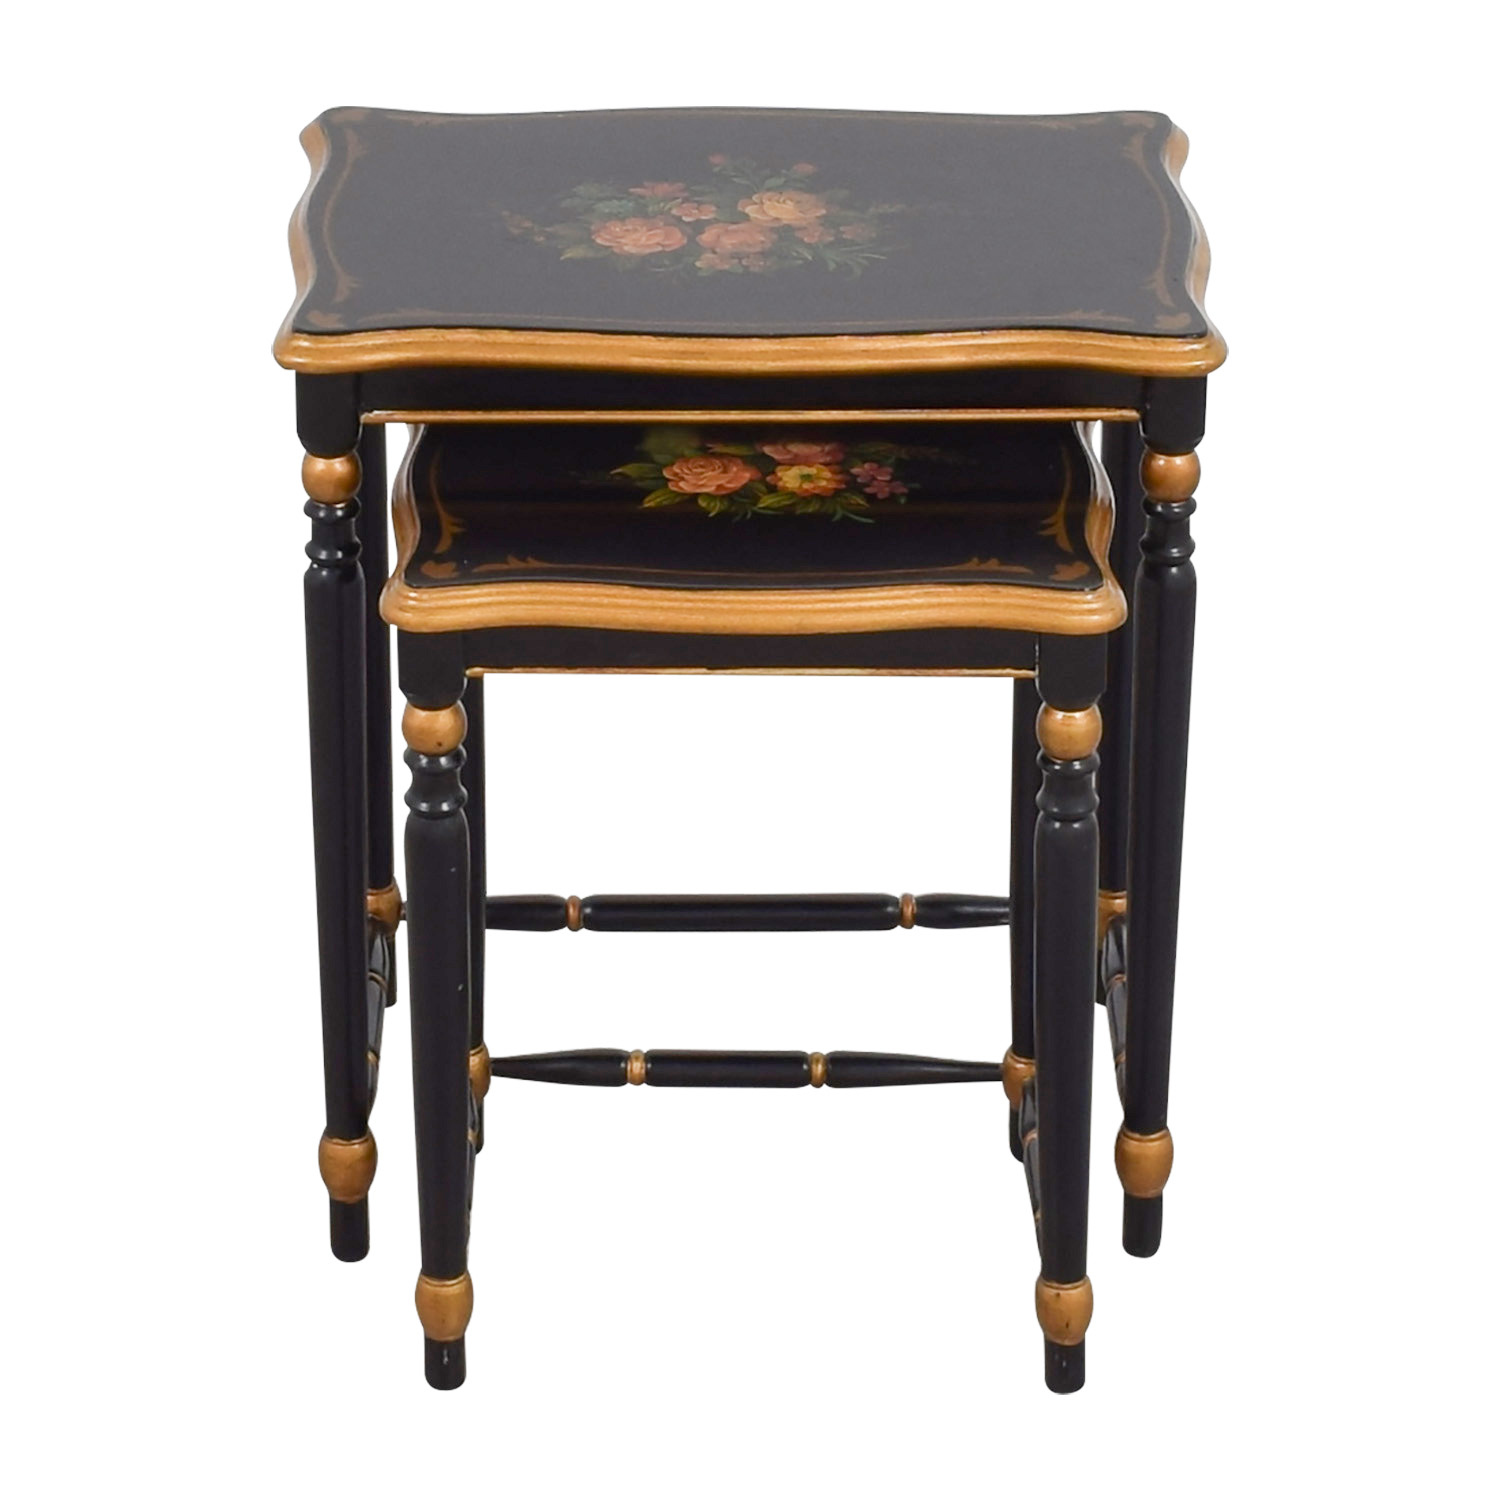 shop Oriental Accent Oriental Accent Nesting Tables with Painted Flower Design online